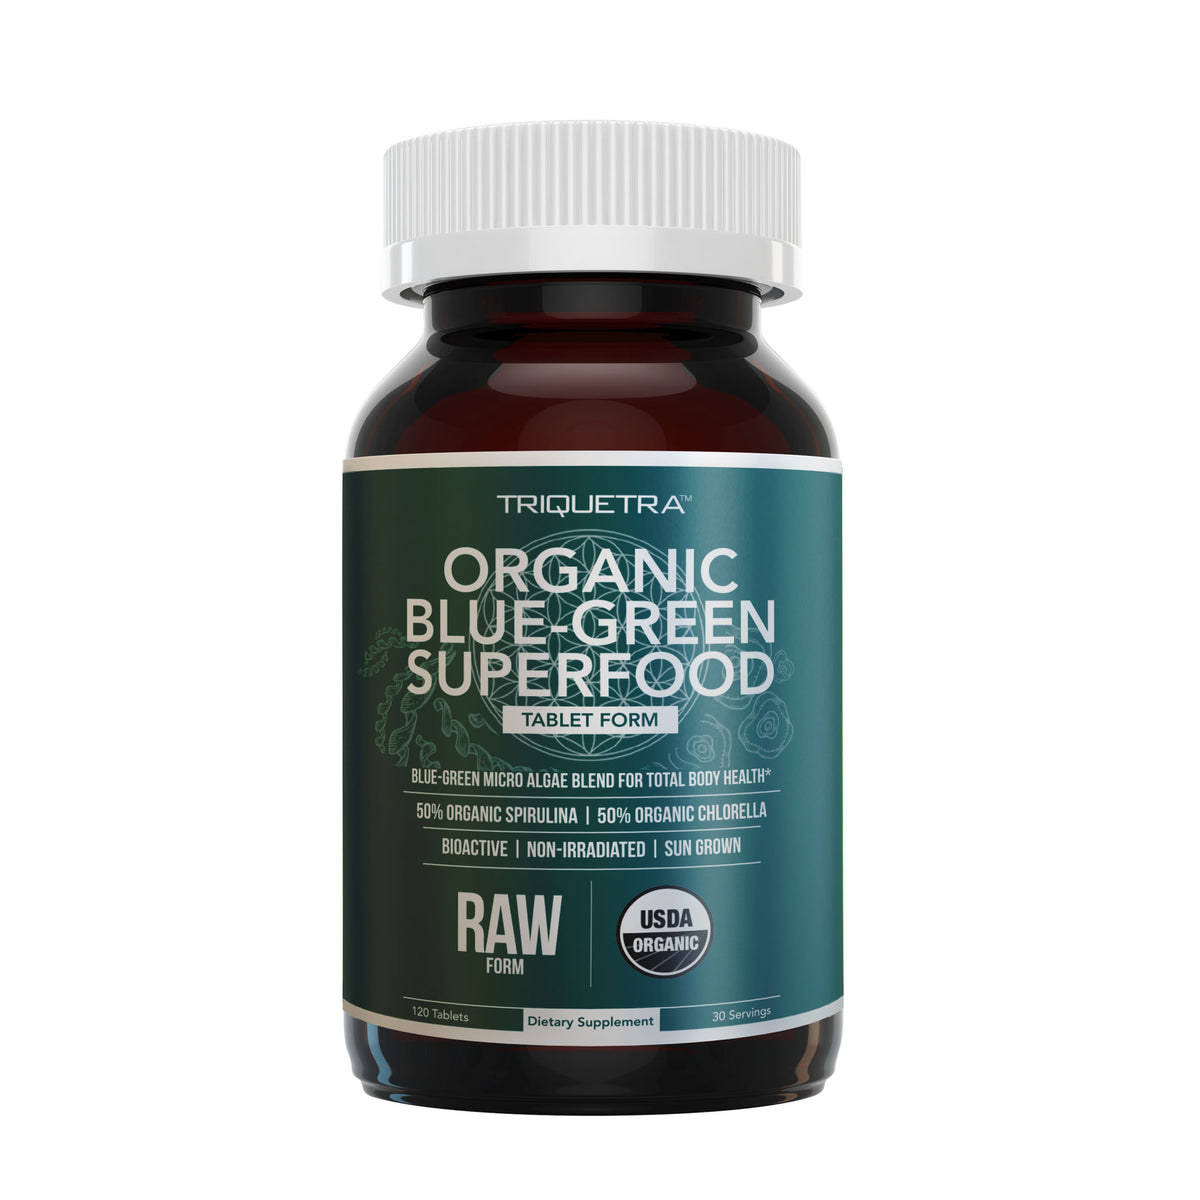 Organic Blue-Green Superfood